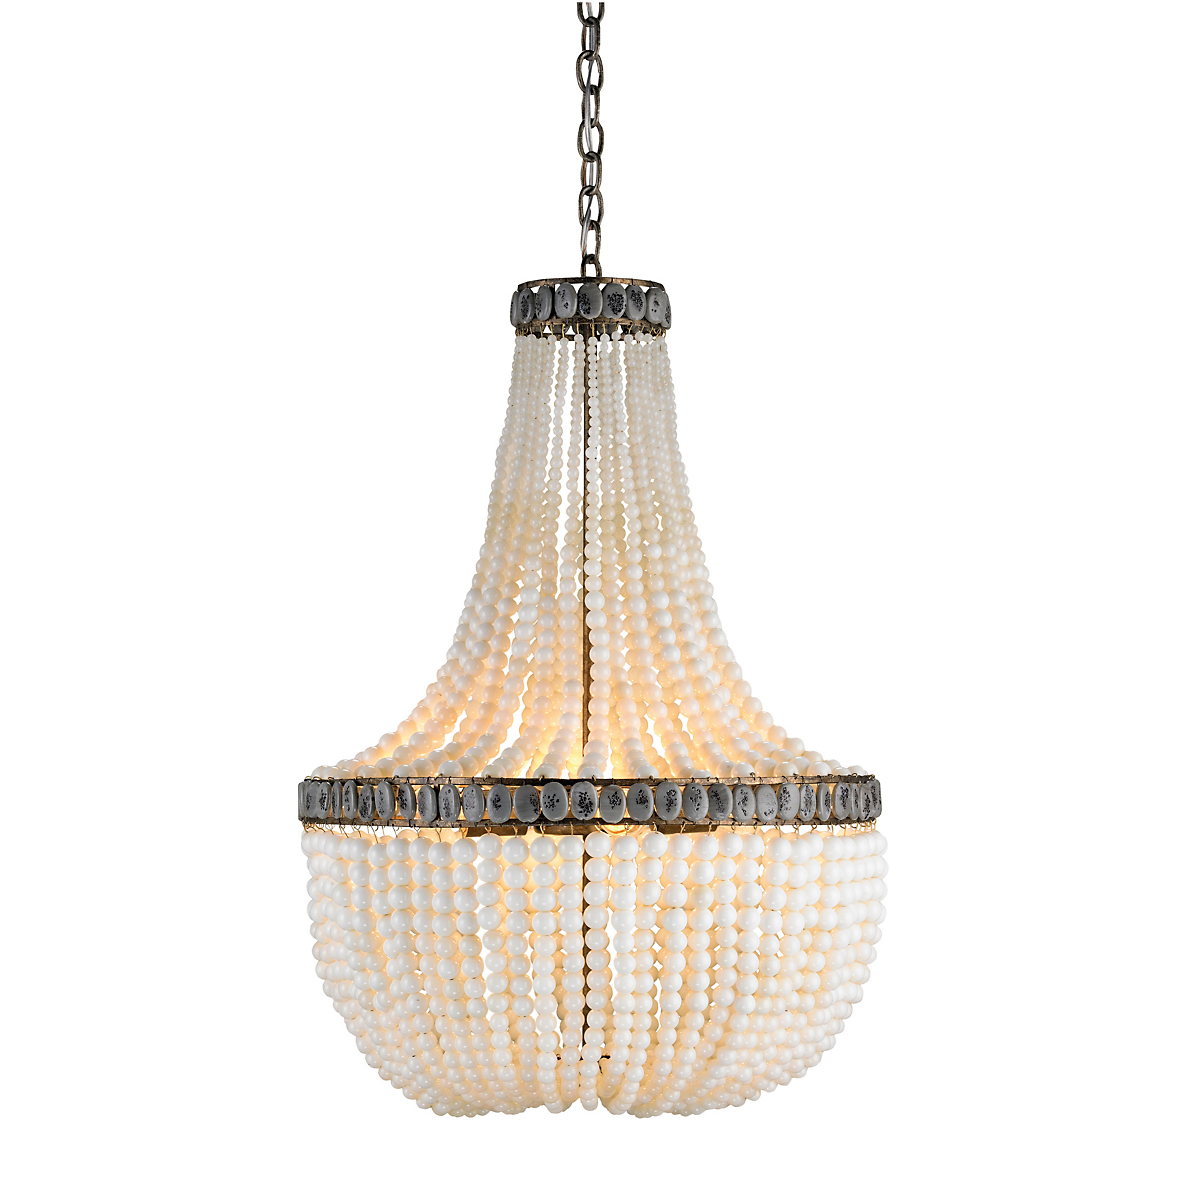 Currey & Company Hedy Chandelier, White